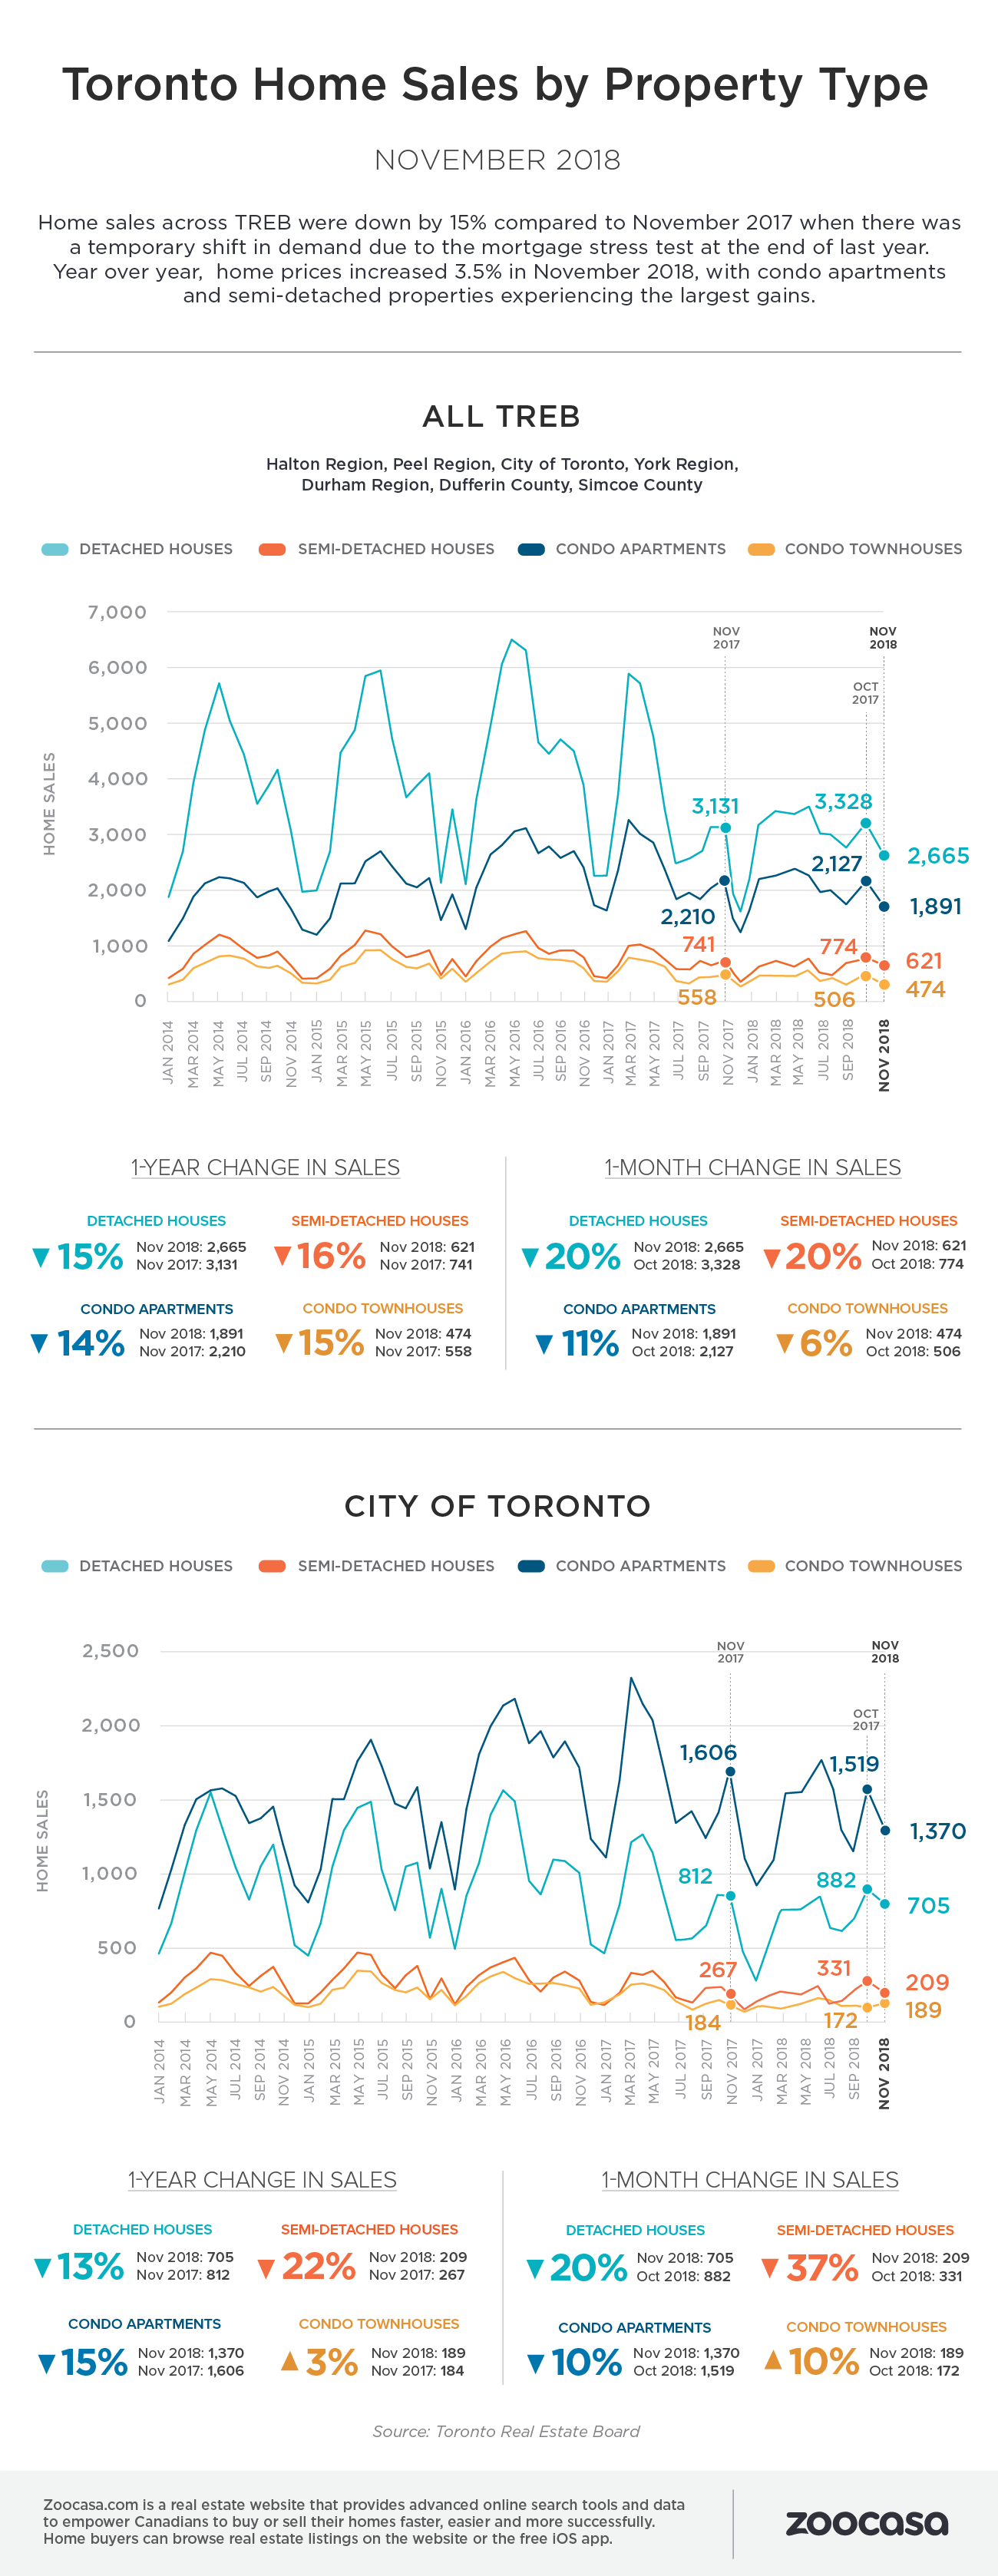 toronto-home-sales-nov-2018-treb-zoocasa